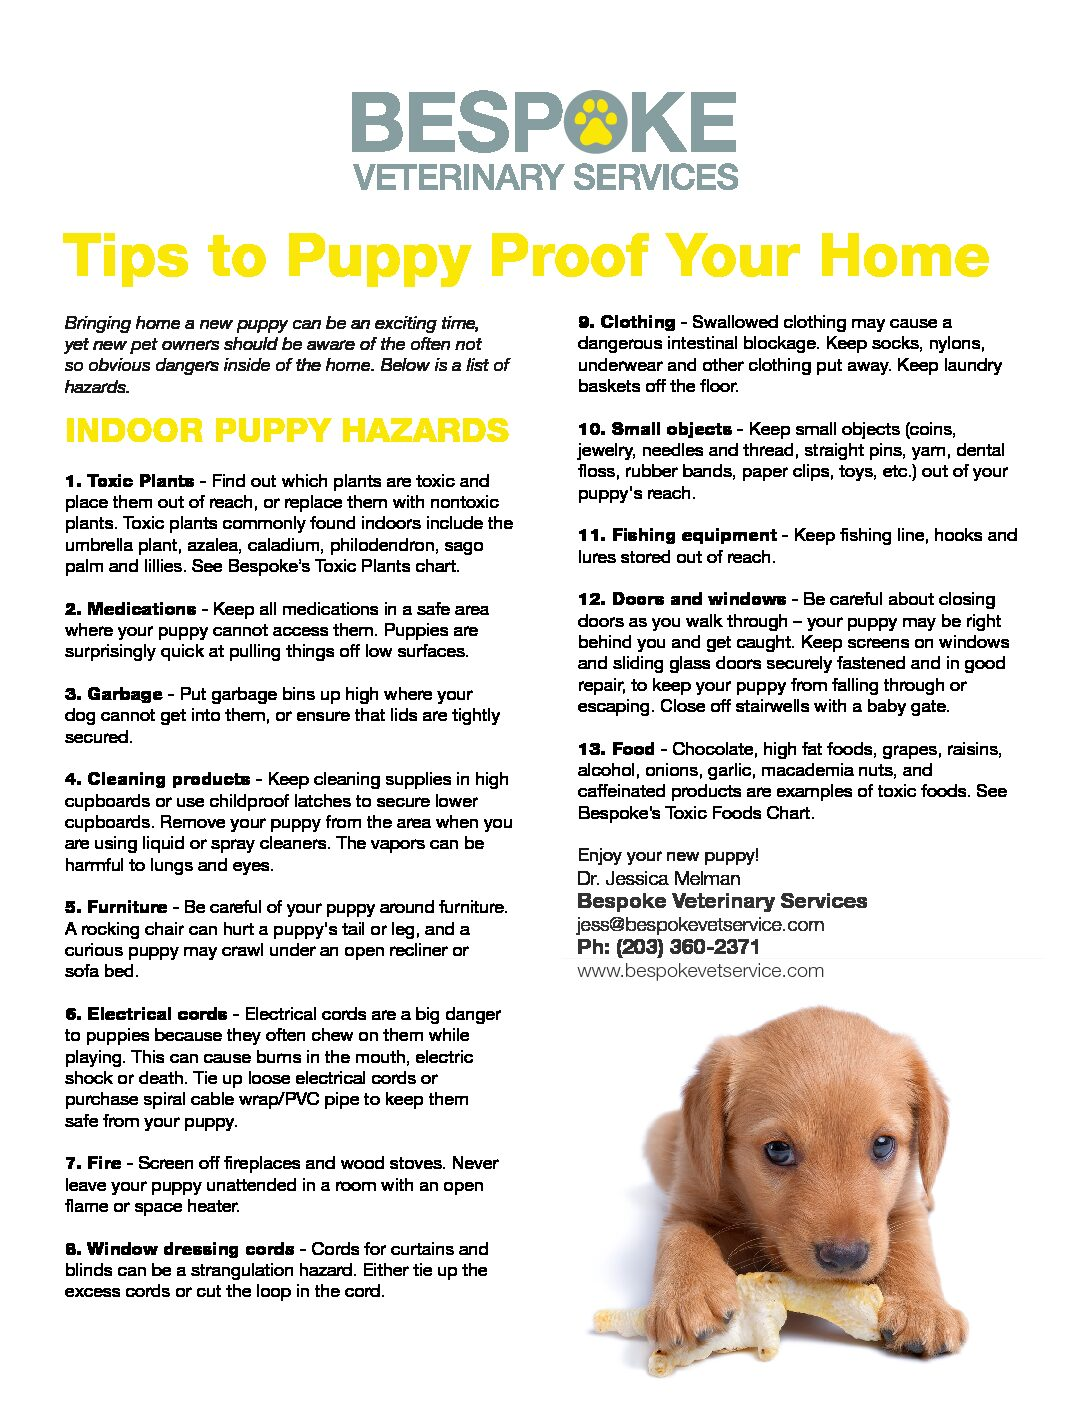 Tips to Puppy Proof Your Home